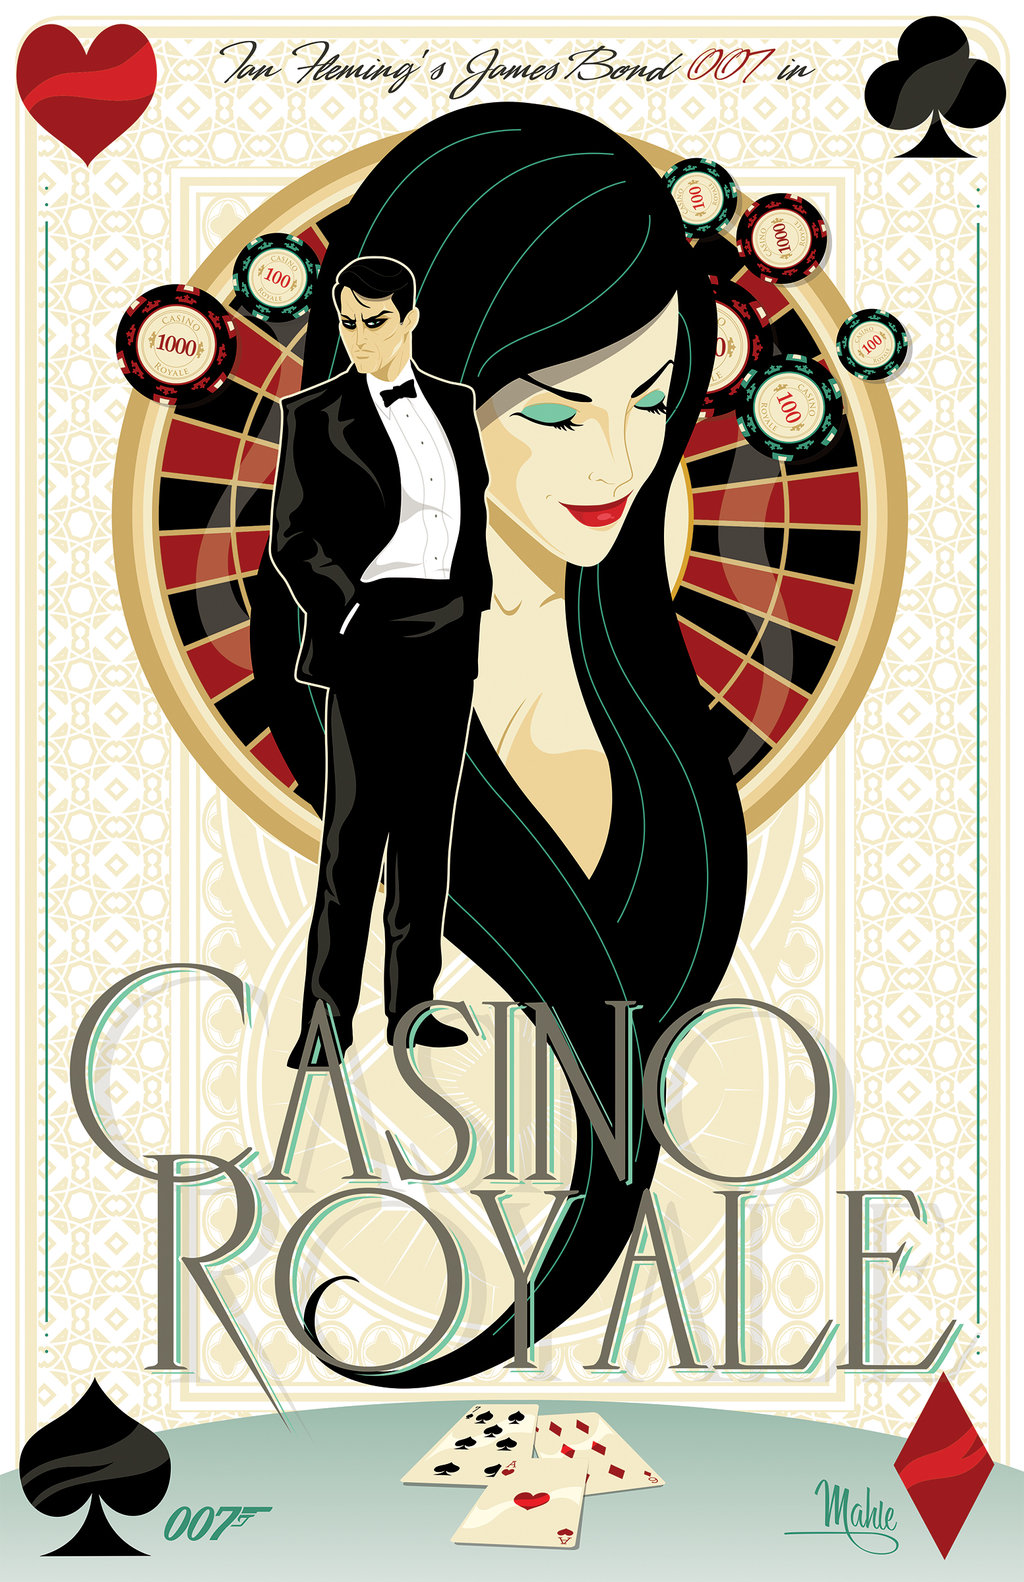 casino royale james bond full movie online the book of ra